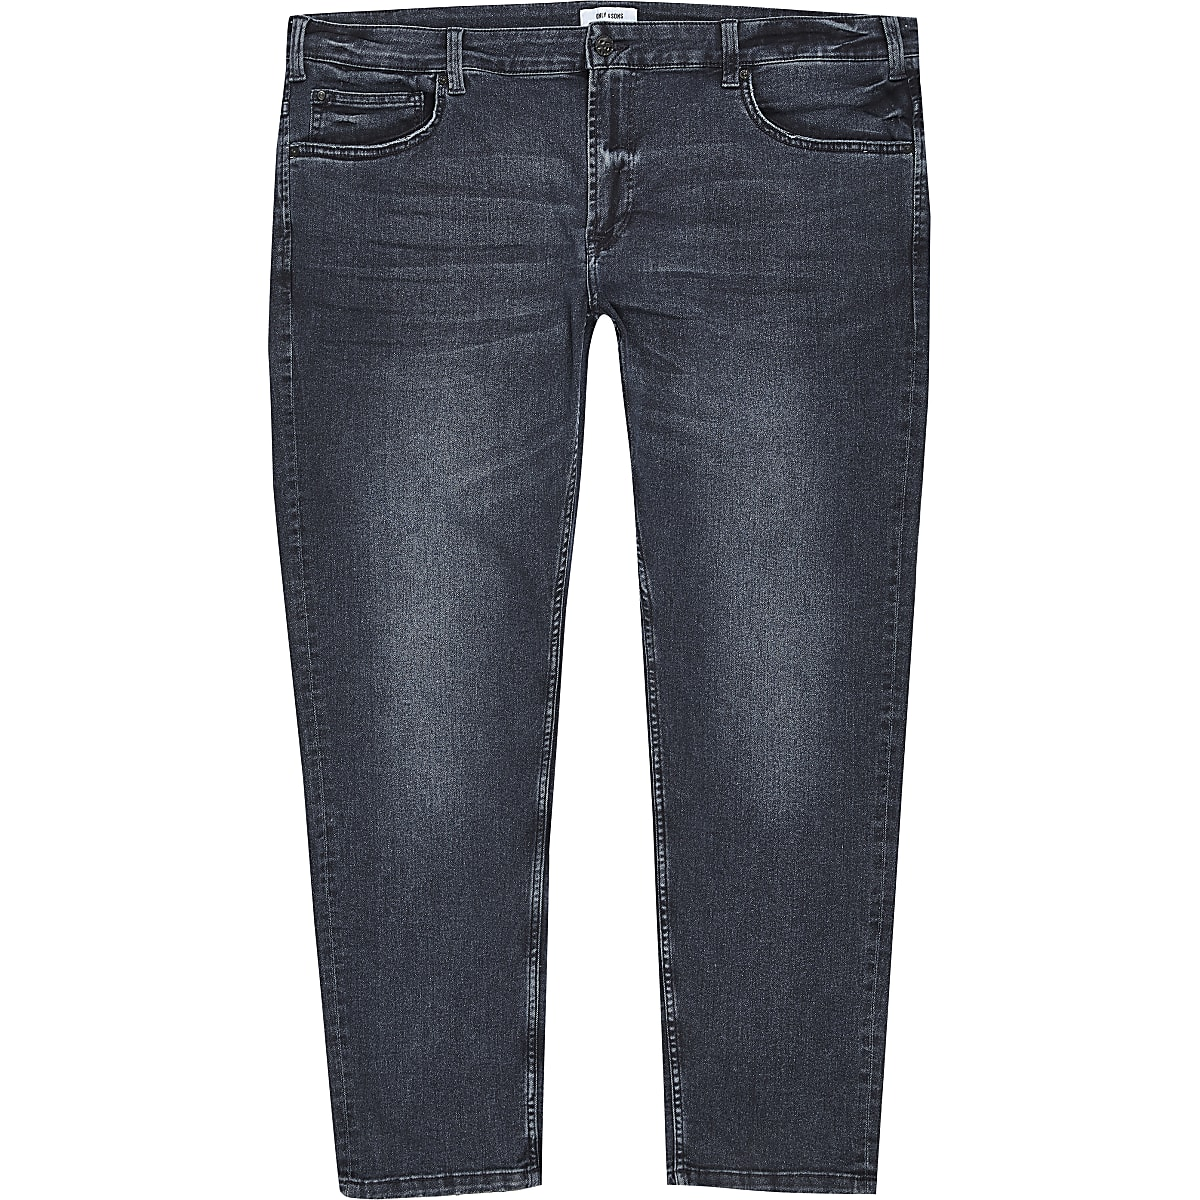 Only & Sons - Big and Tall - Blauwzwarte jeans